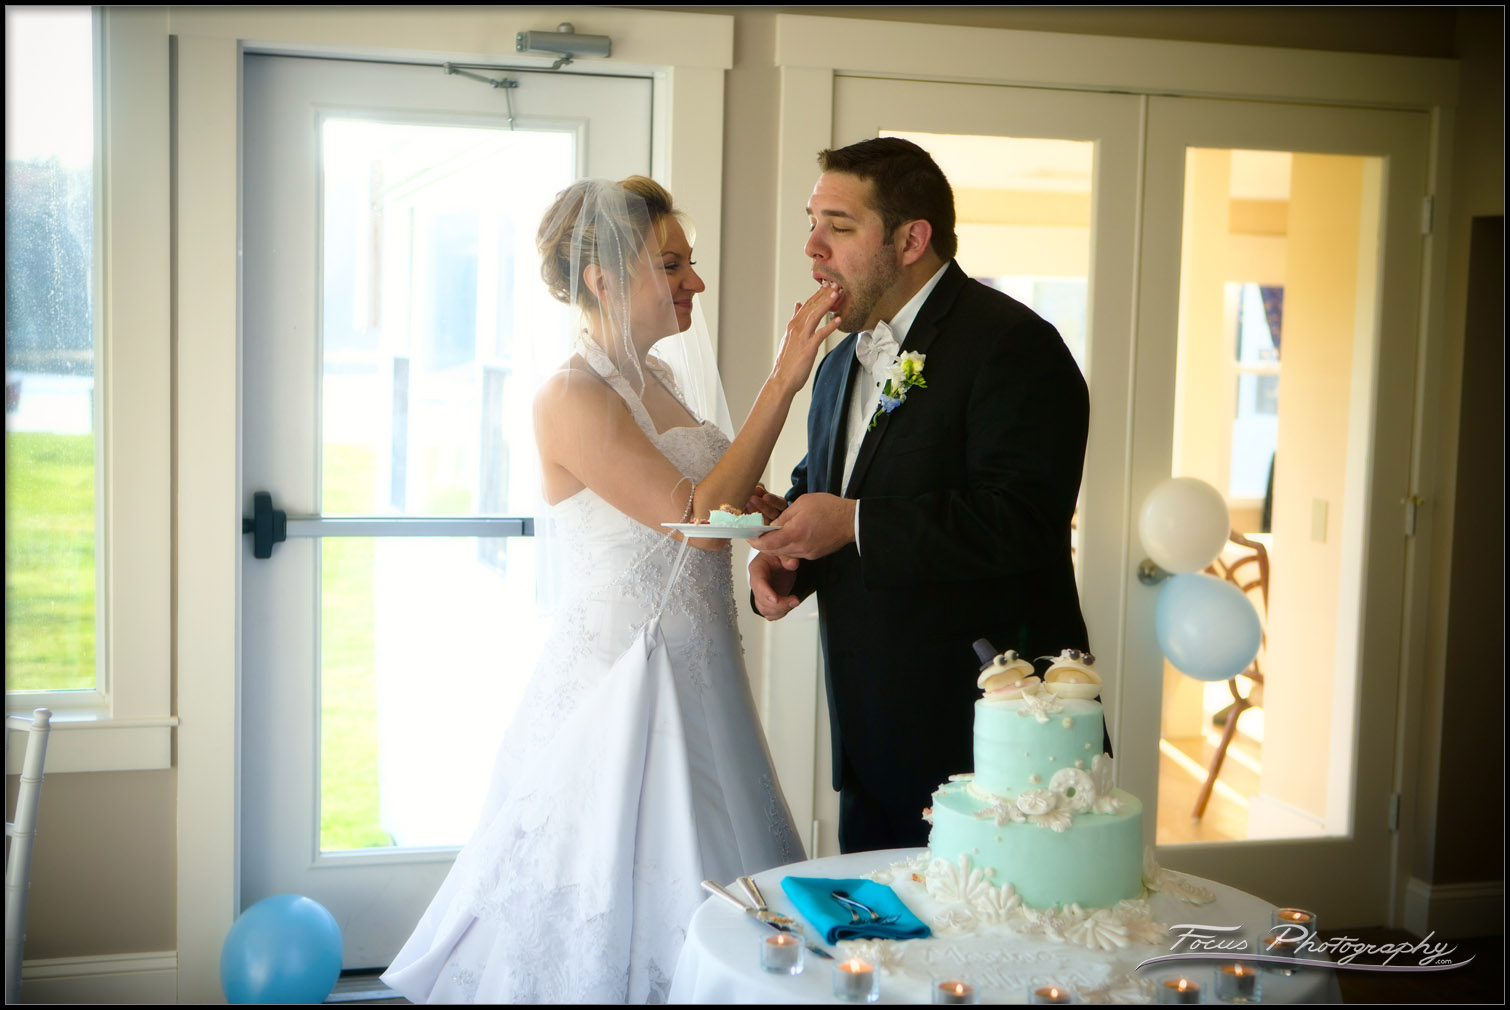 The bride feeds the groom at Maine wedding in Kennebunkport